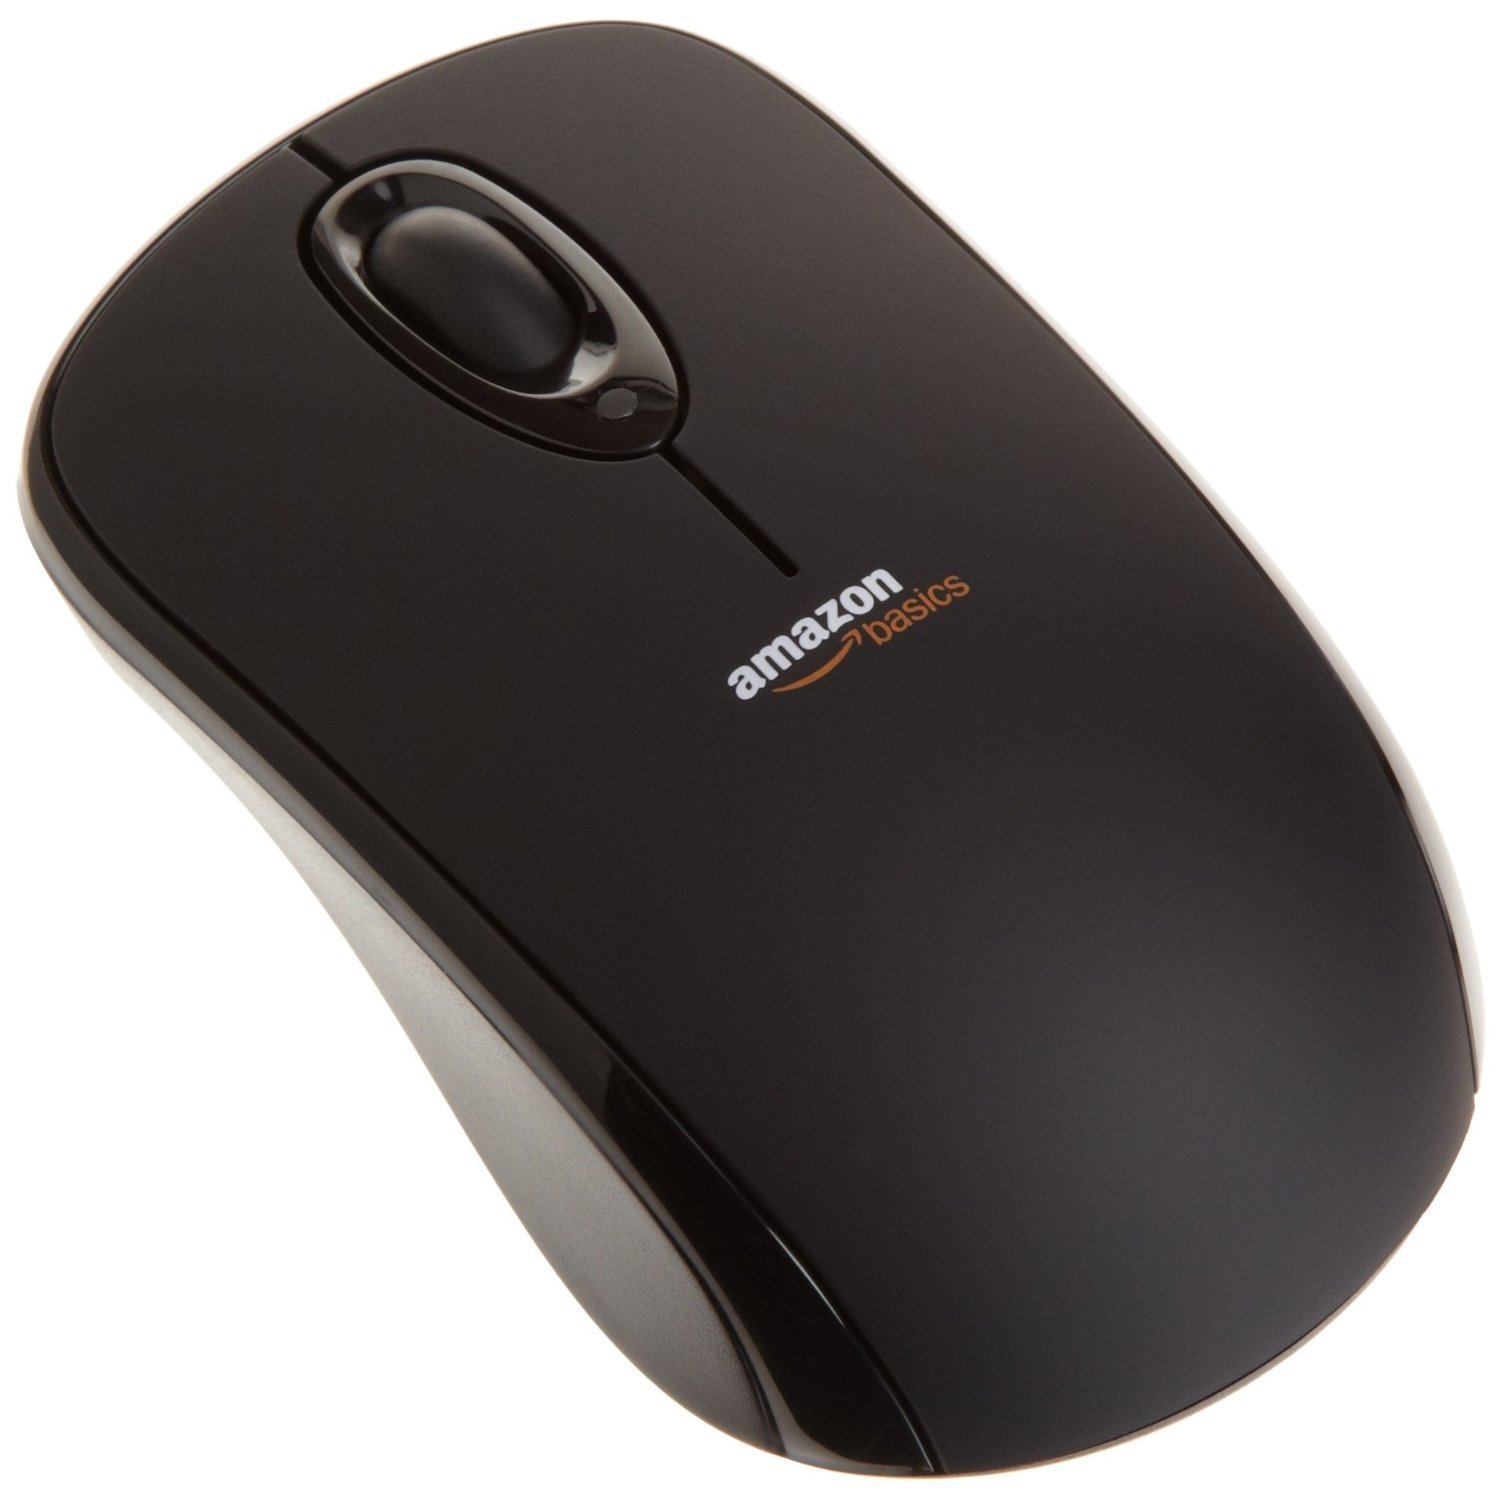 Amazon Basics wireless mouse